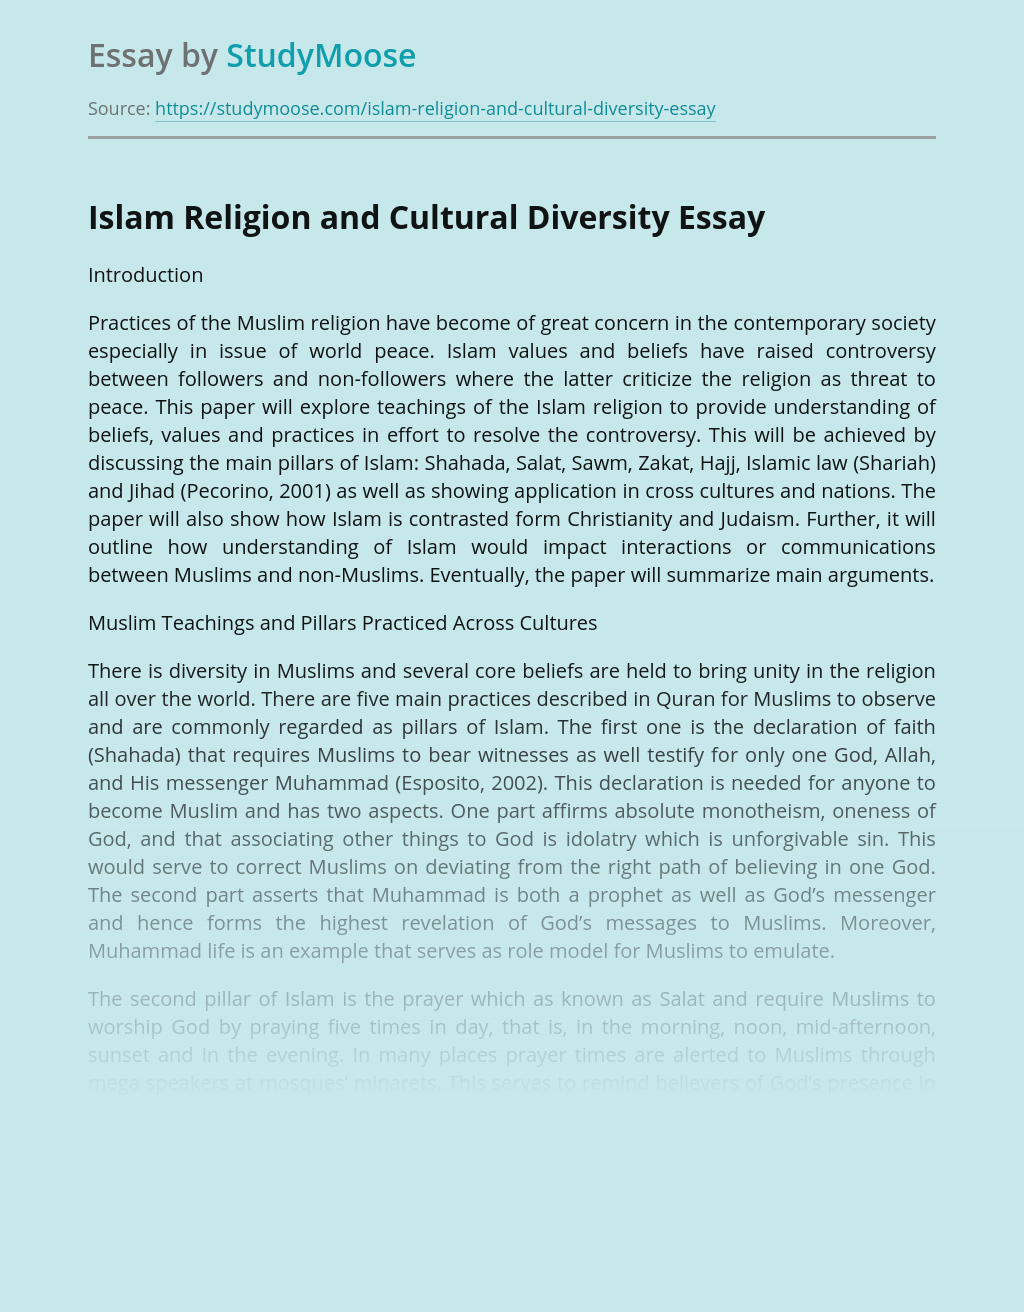 Islam Religion and Cultural Diversity